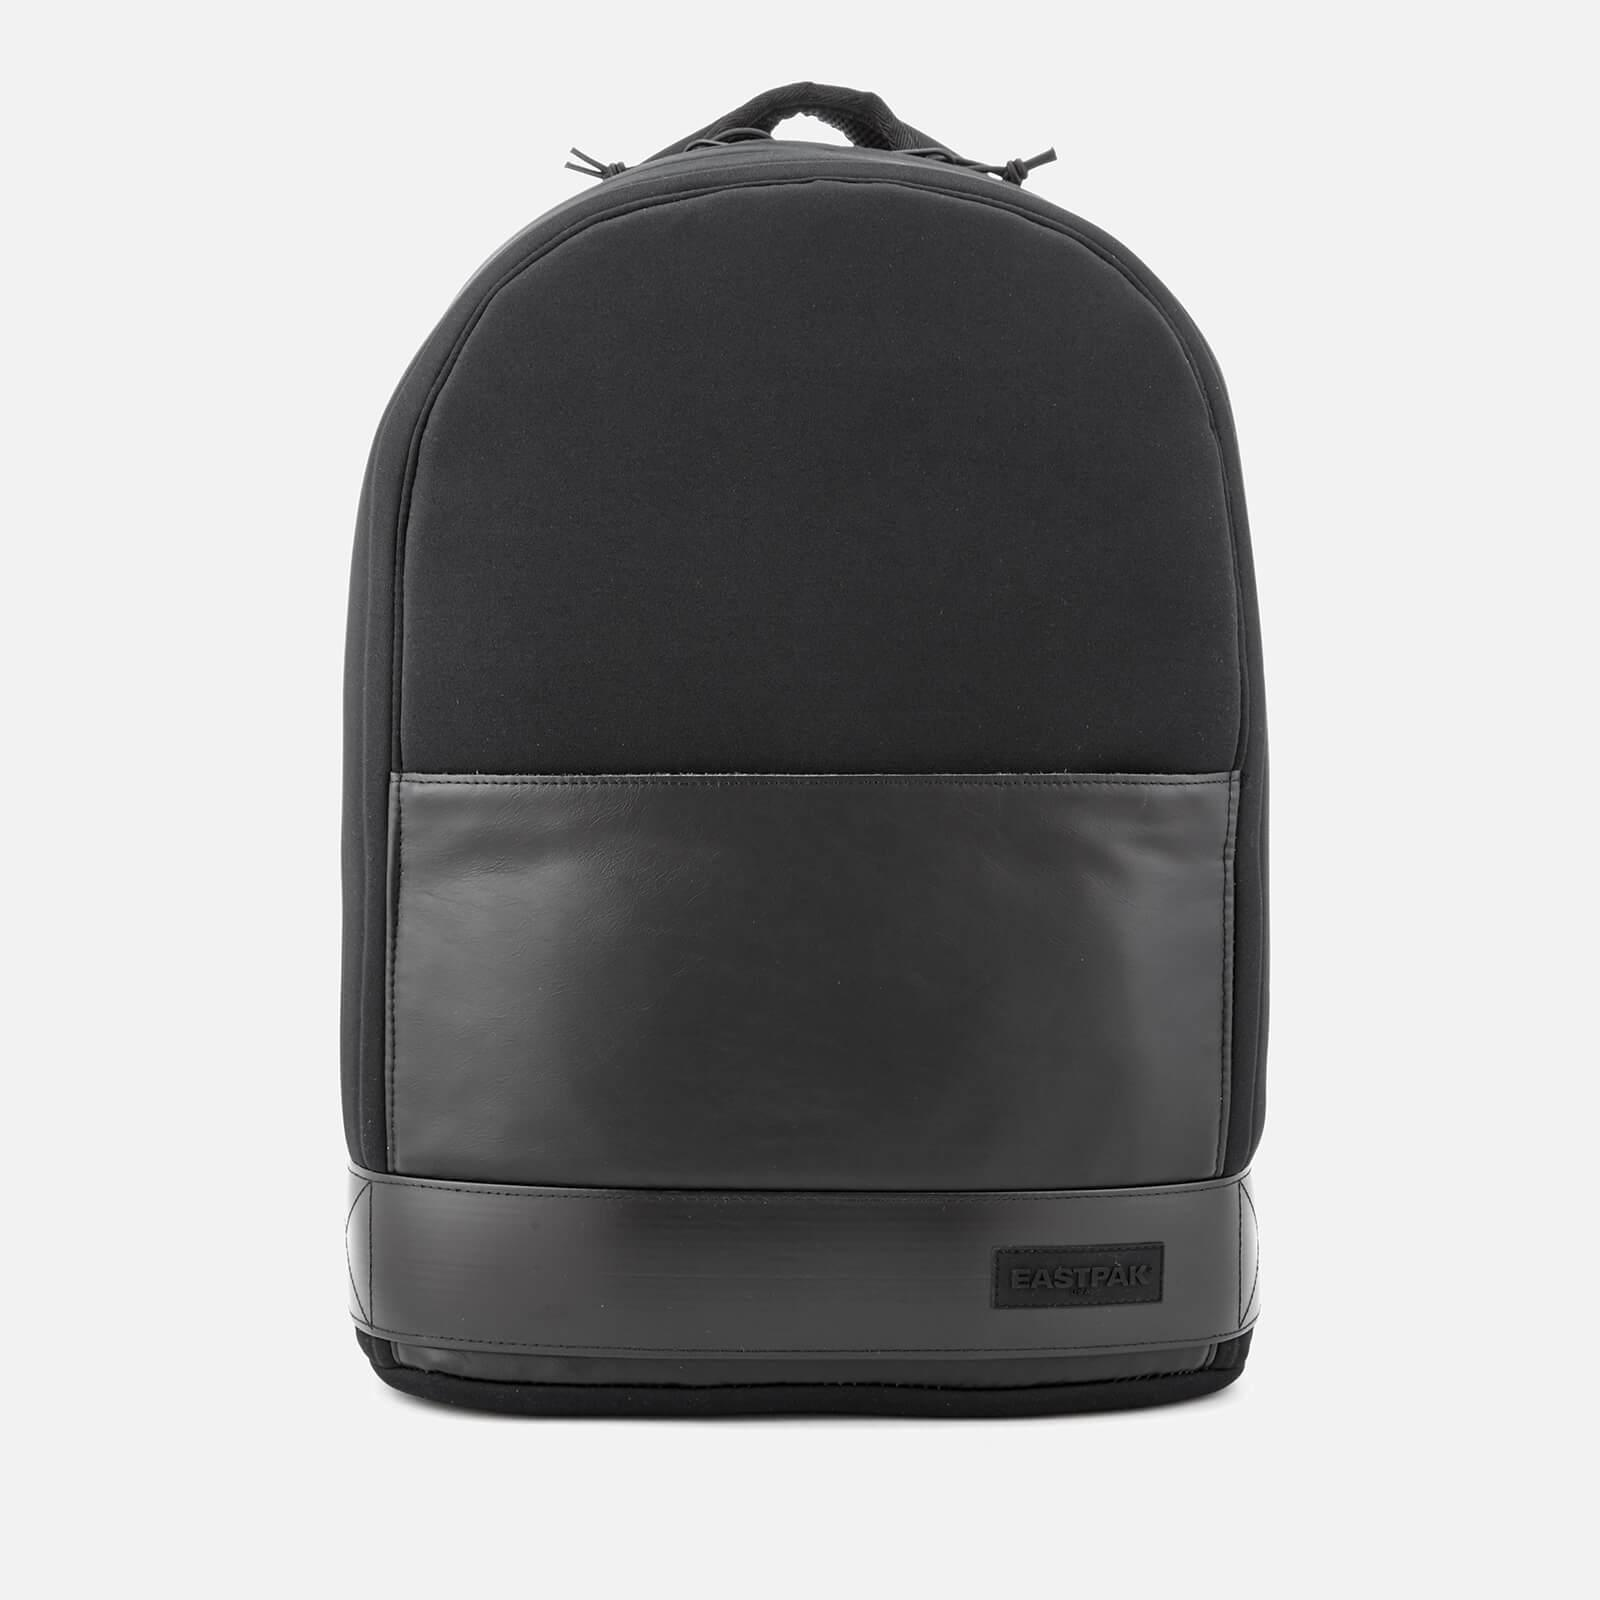 Eastpak Men's Authentic Neoprene Lab Out Of Office Backpack in Black for Men